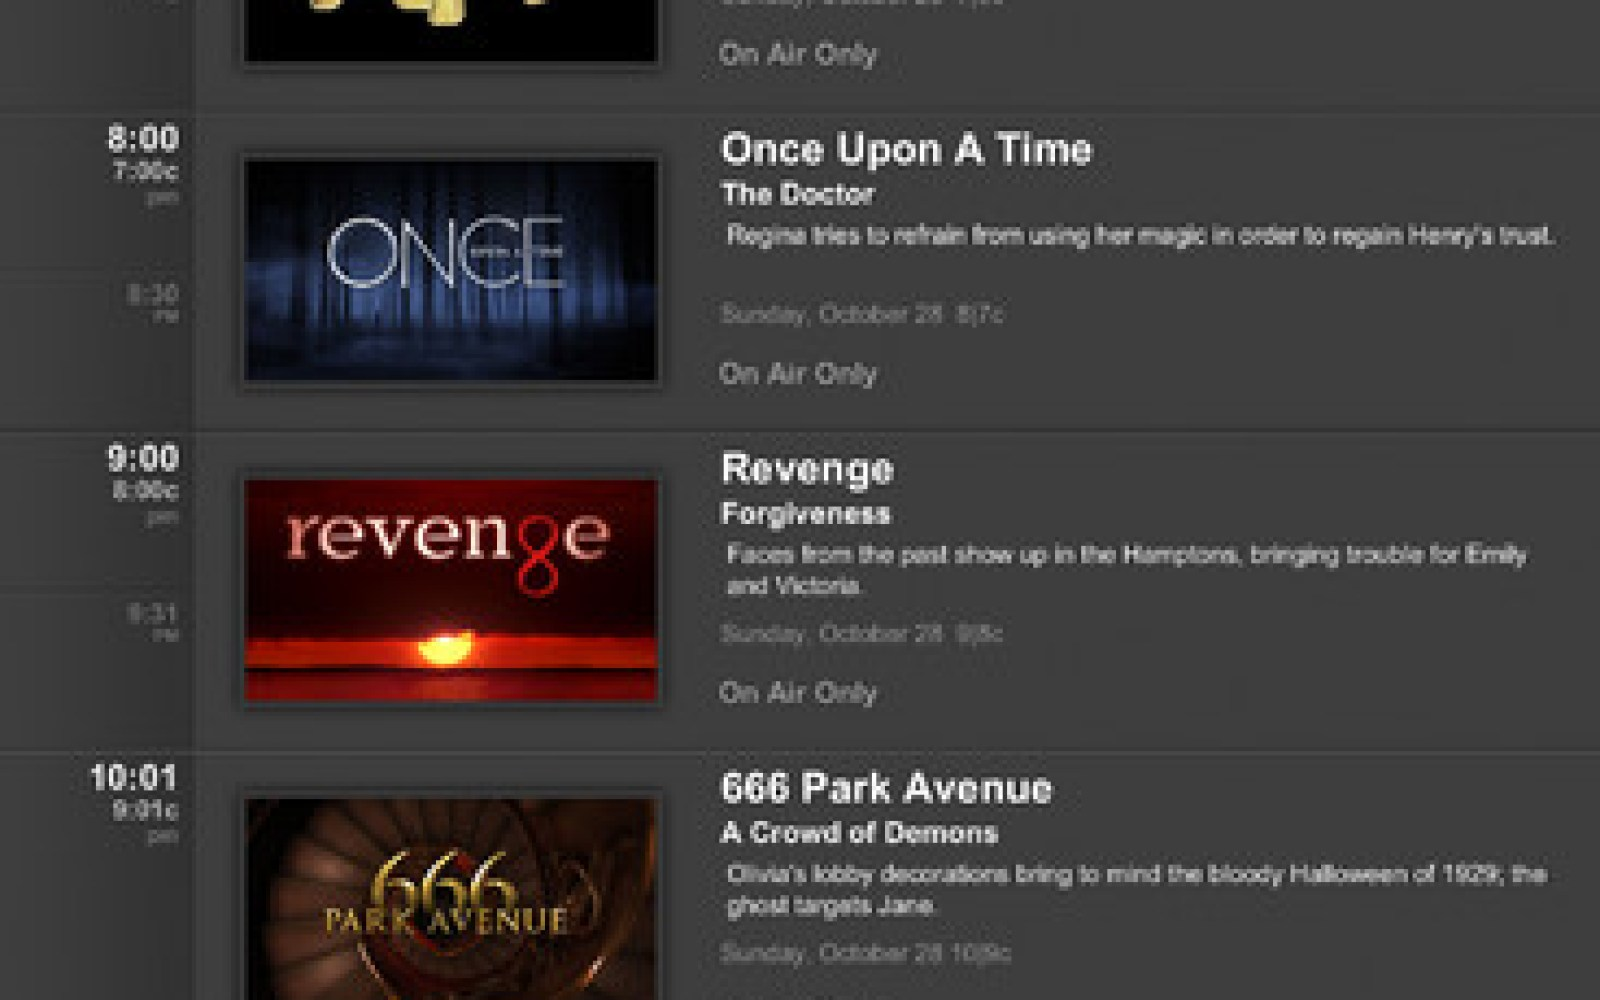 Disney's ABC to livestream all programming to iOS devices starting this week